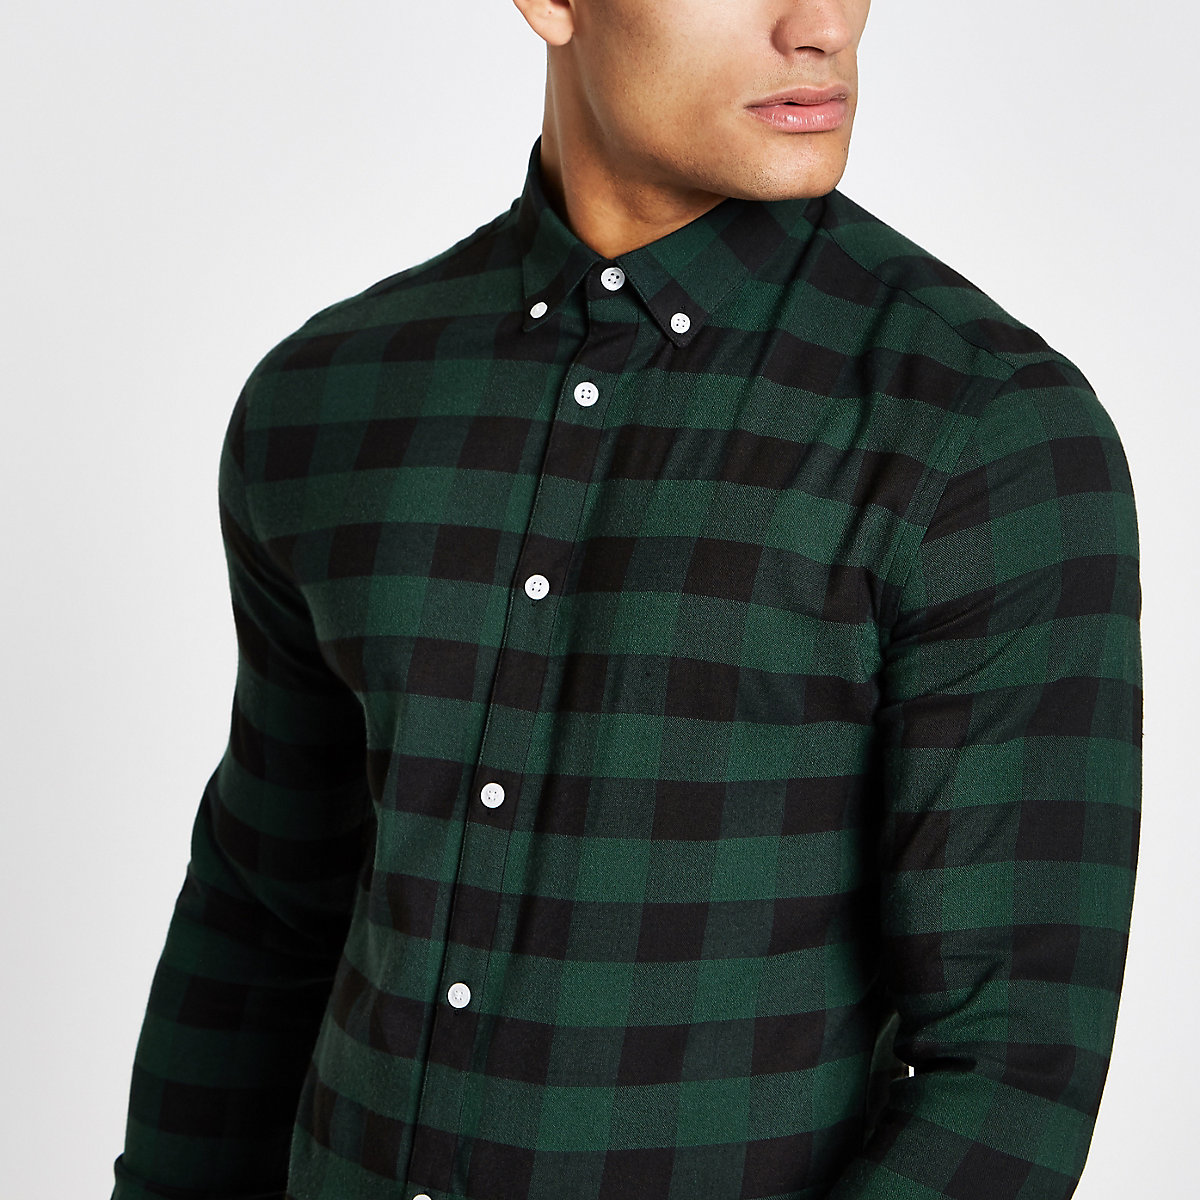 Green check muscle fit long sleeve shirt